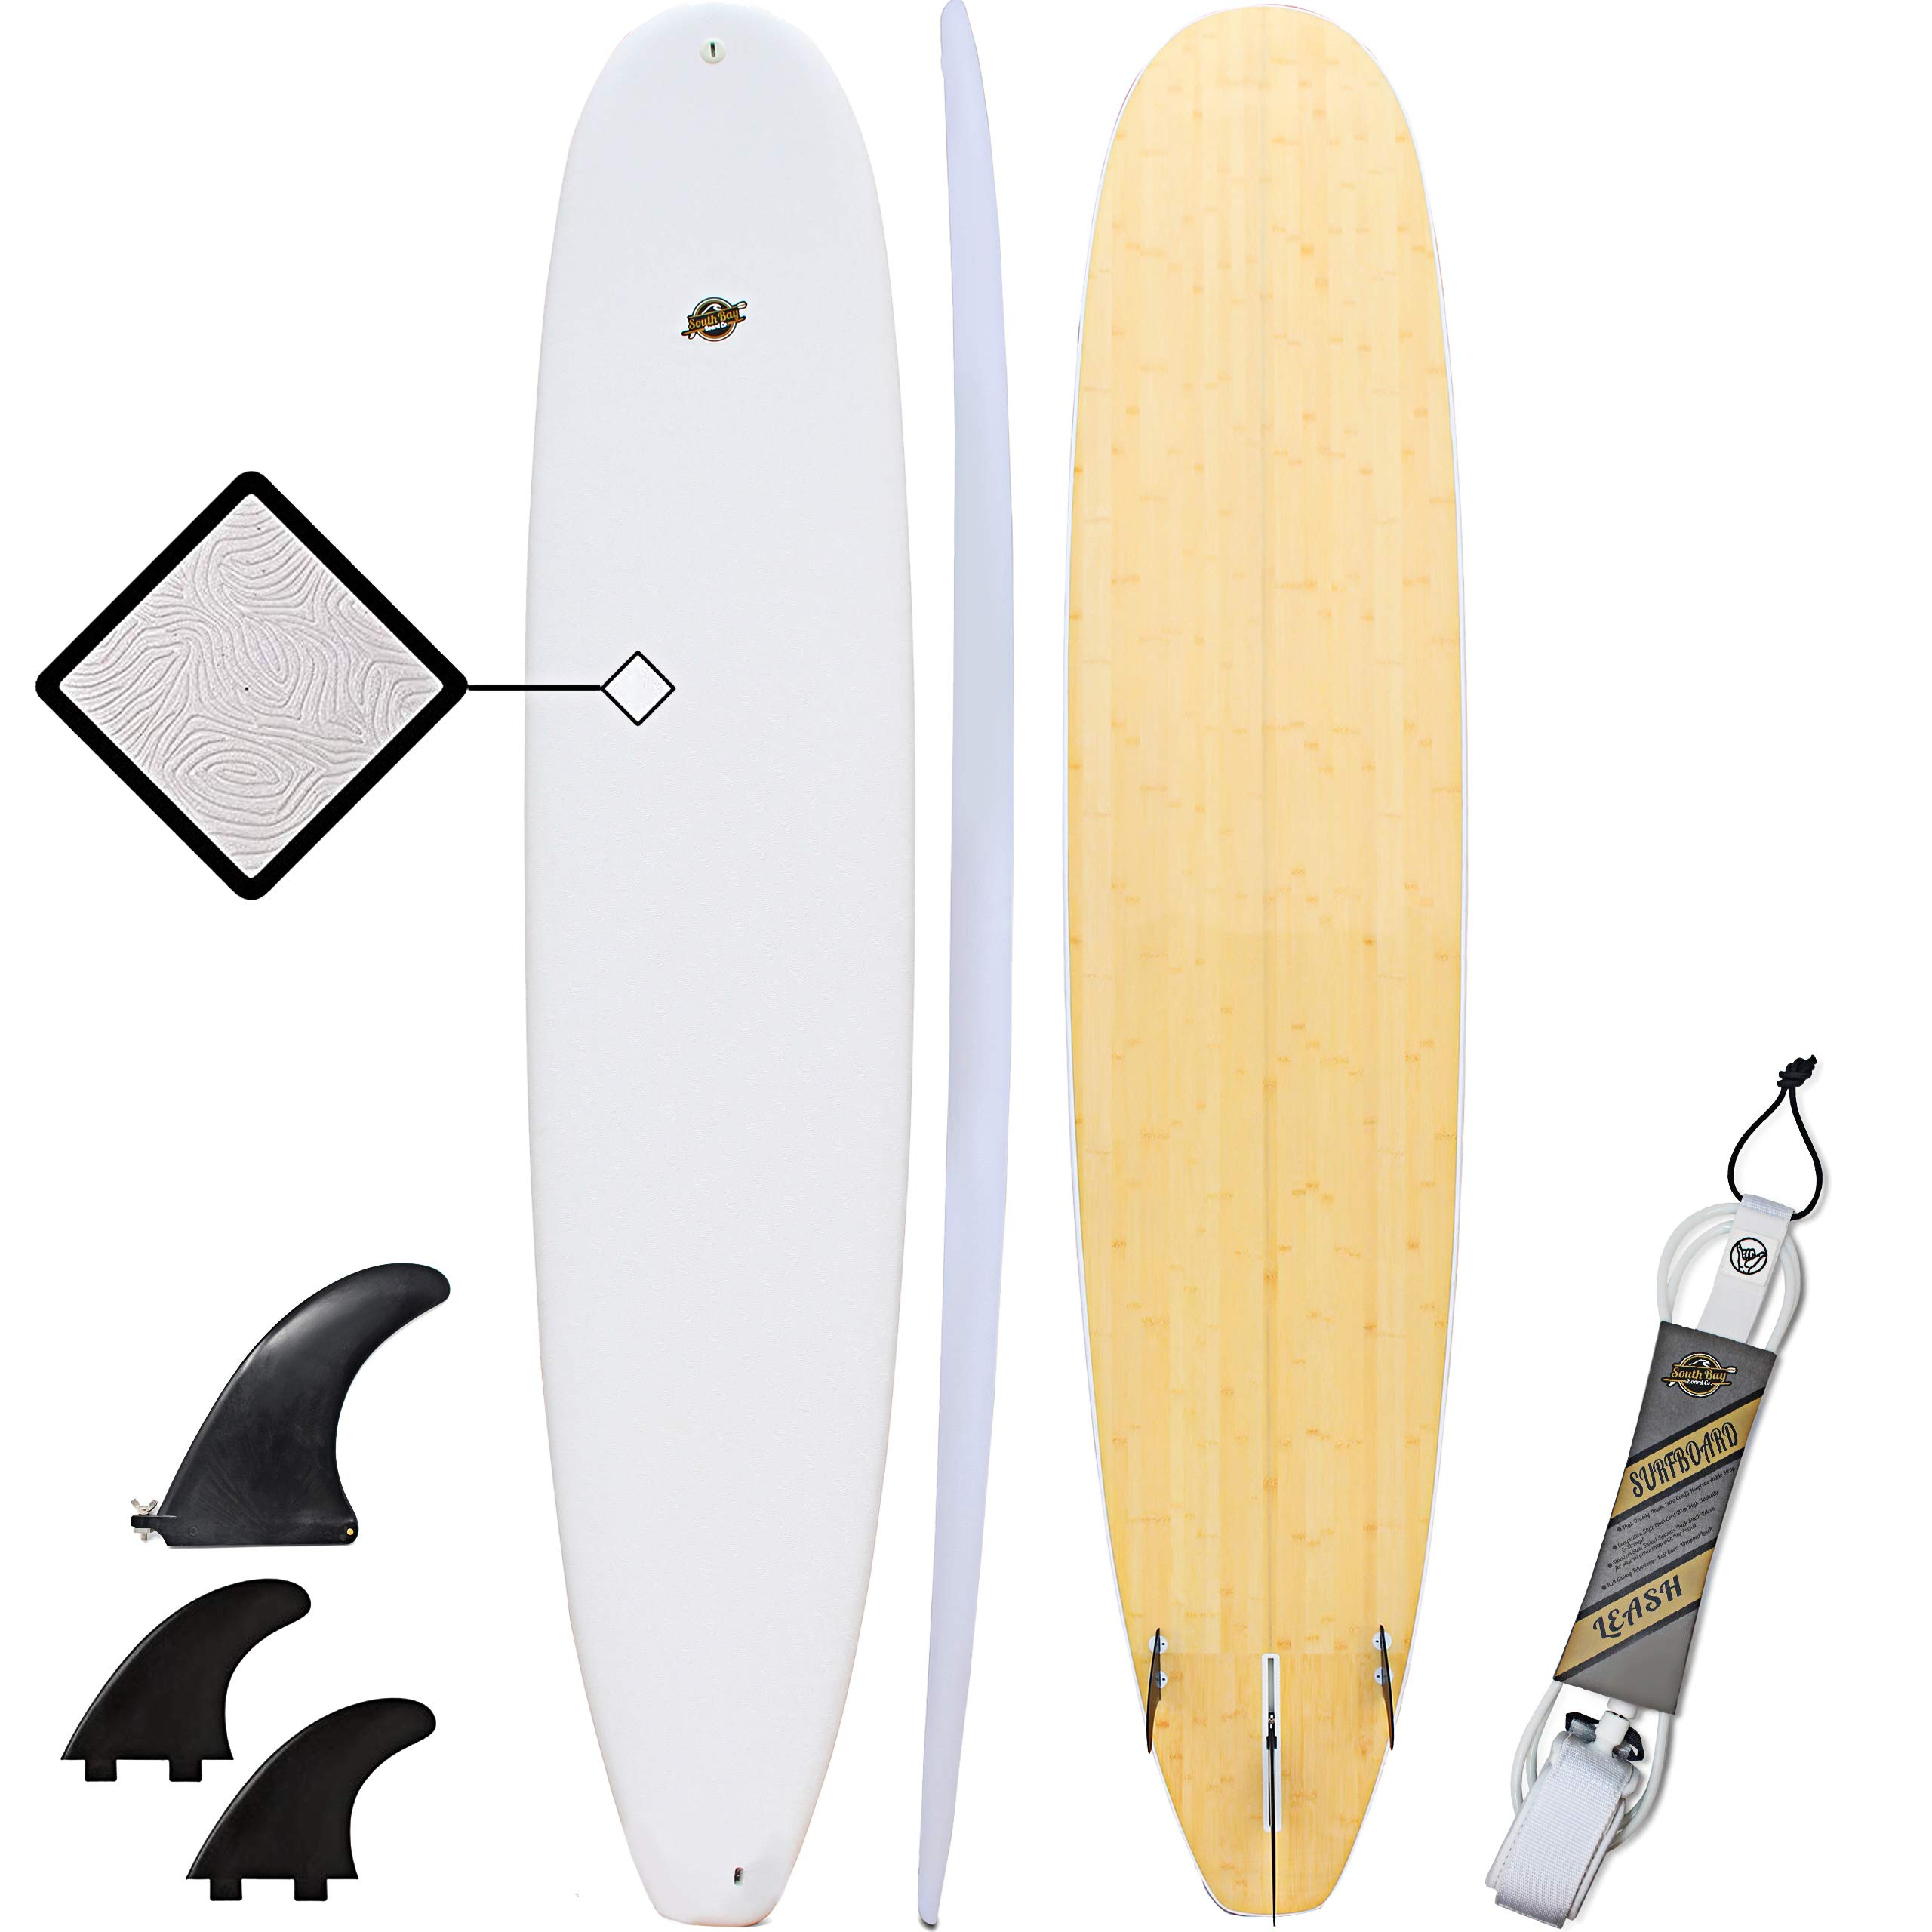 Hybrid Surfboard - Best Performance Foam Surfboard for All Levels of Surfing - Custom Longboard & Shortboard Surfboard Shapes for Kids and Adults - Wax Free Soft Top + Fiberglassed Hard Bottom by South Bay Board Co.